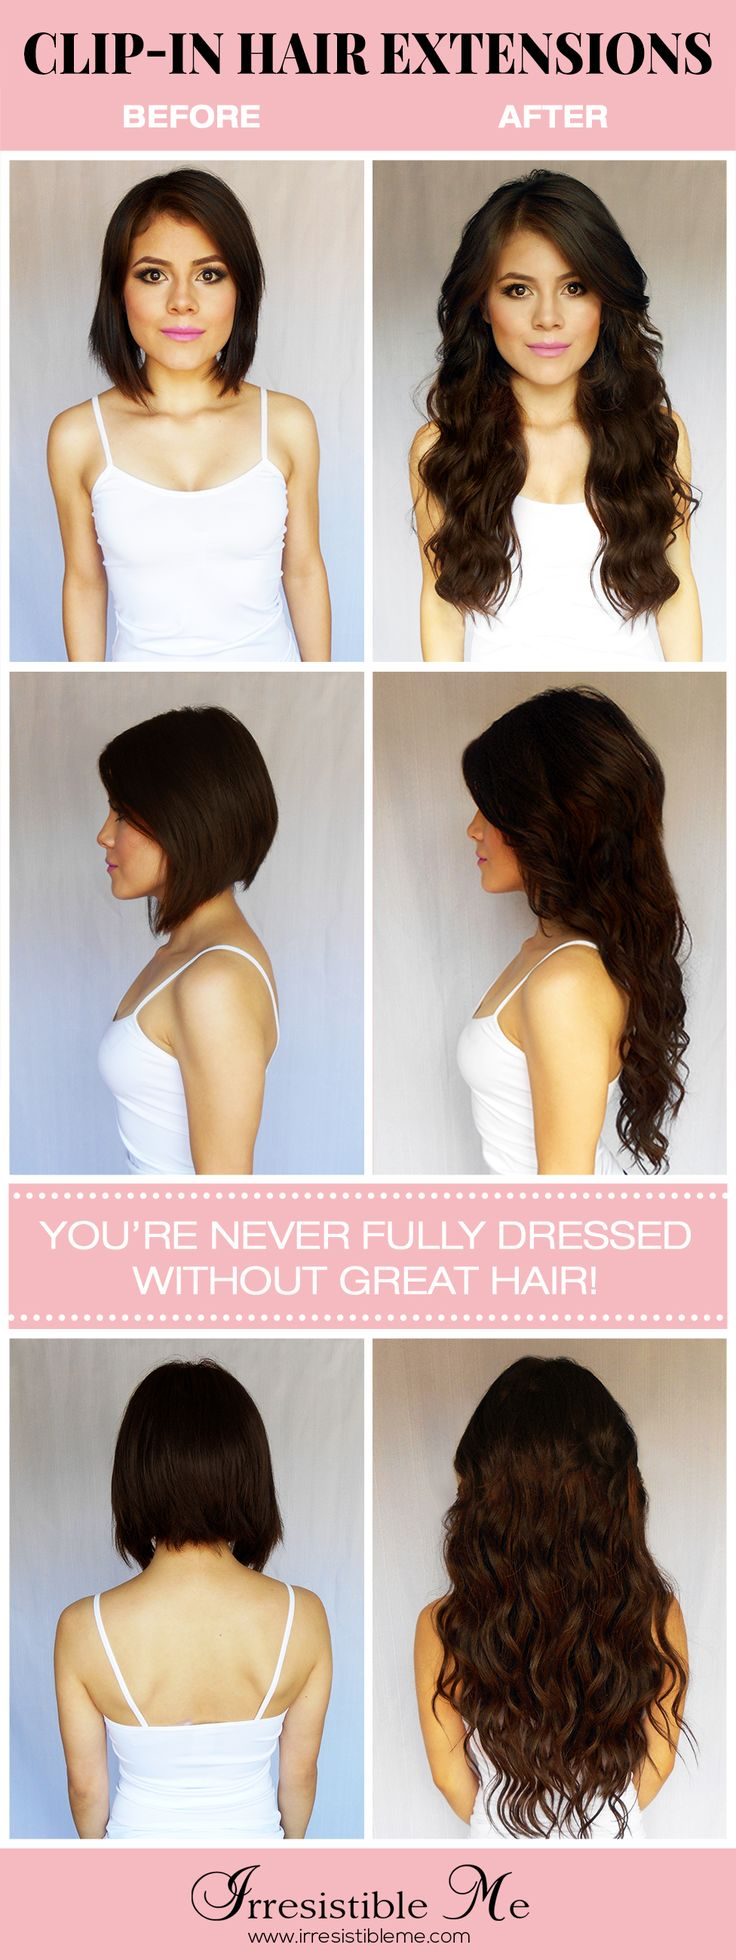 Best 25 extensions hair ideas on pinterest clip in hair get long hair in less than 5 minutes with irresistible me human remy clip in hair extensions the before and after change is totally awesome and nobody will pmusecretfo Image collections